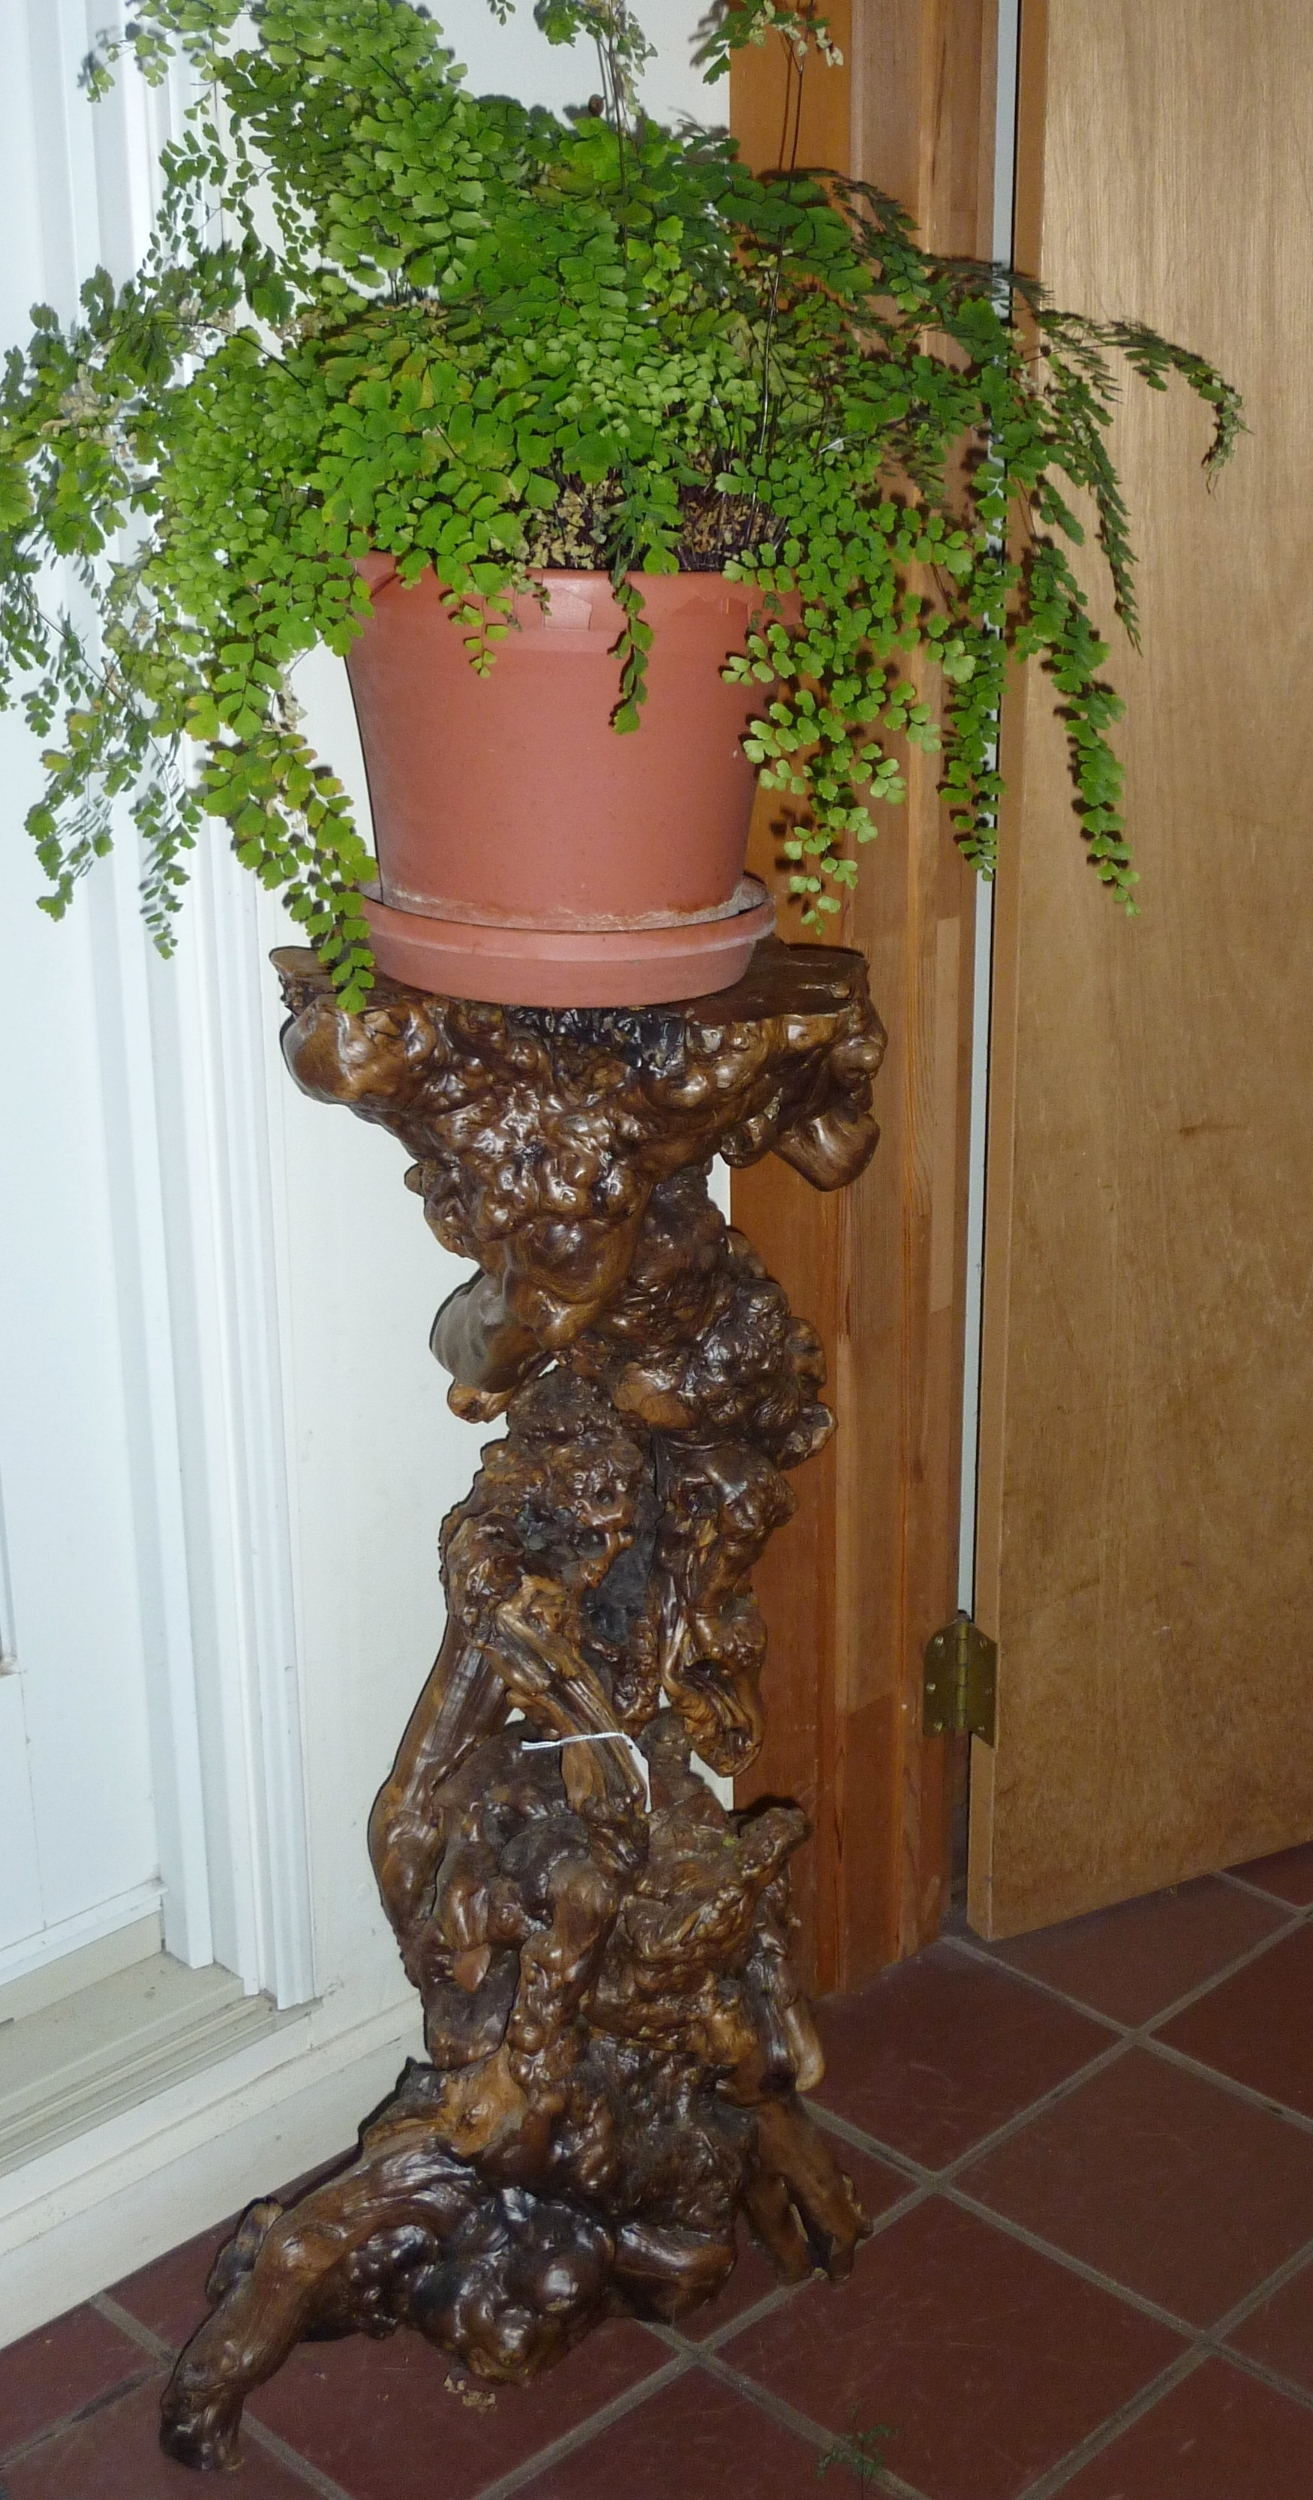 Wood burl root plant stand, China, mid 20th century.